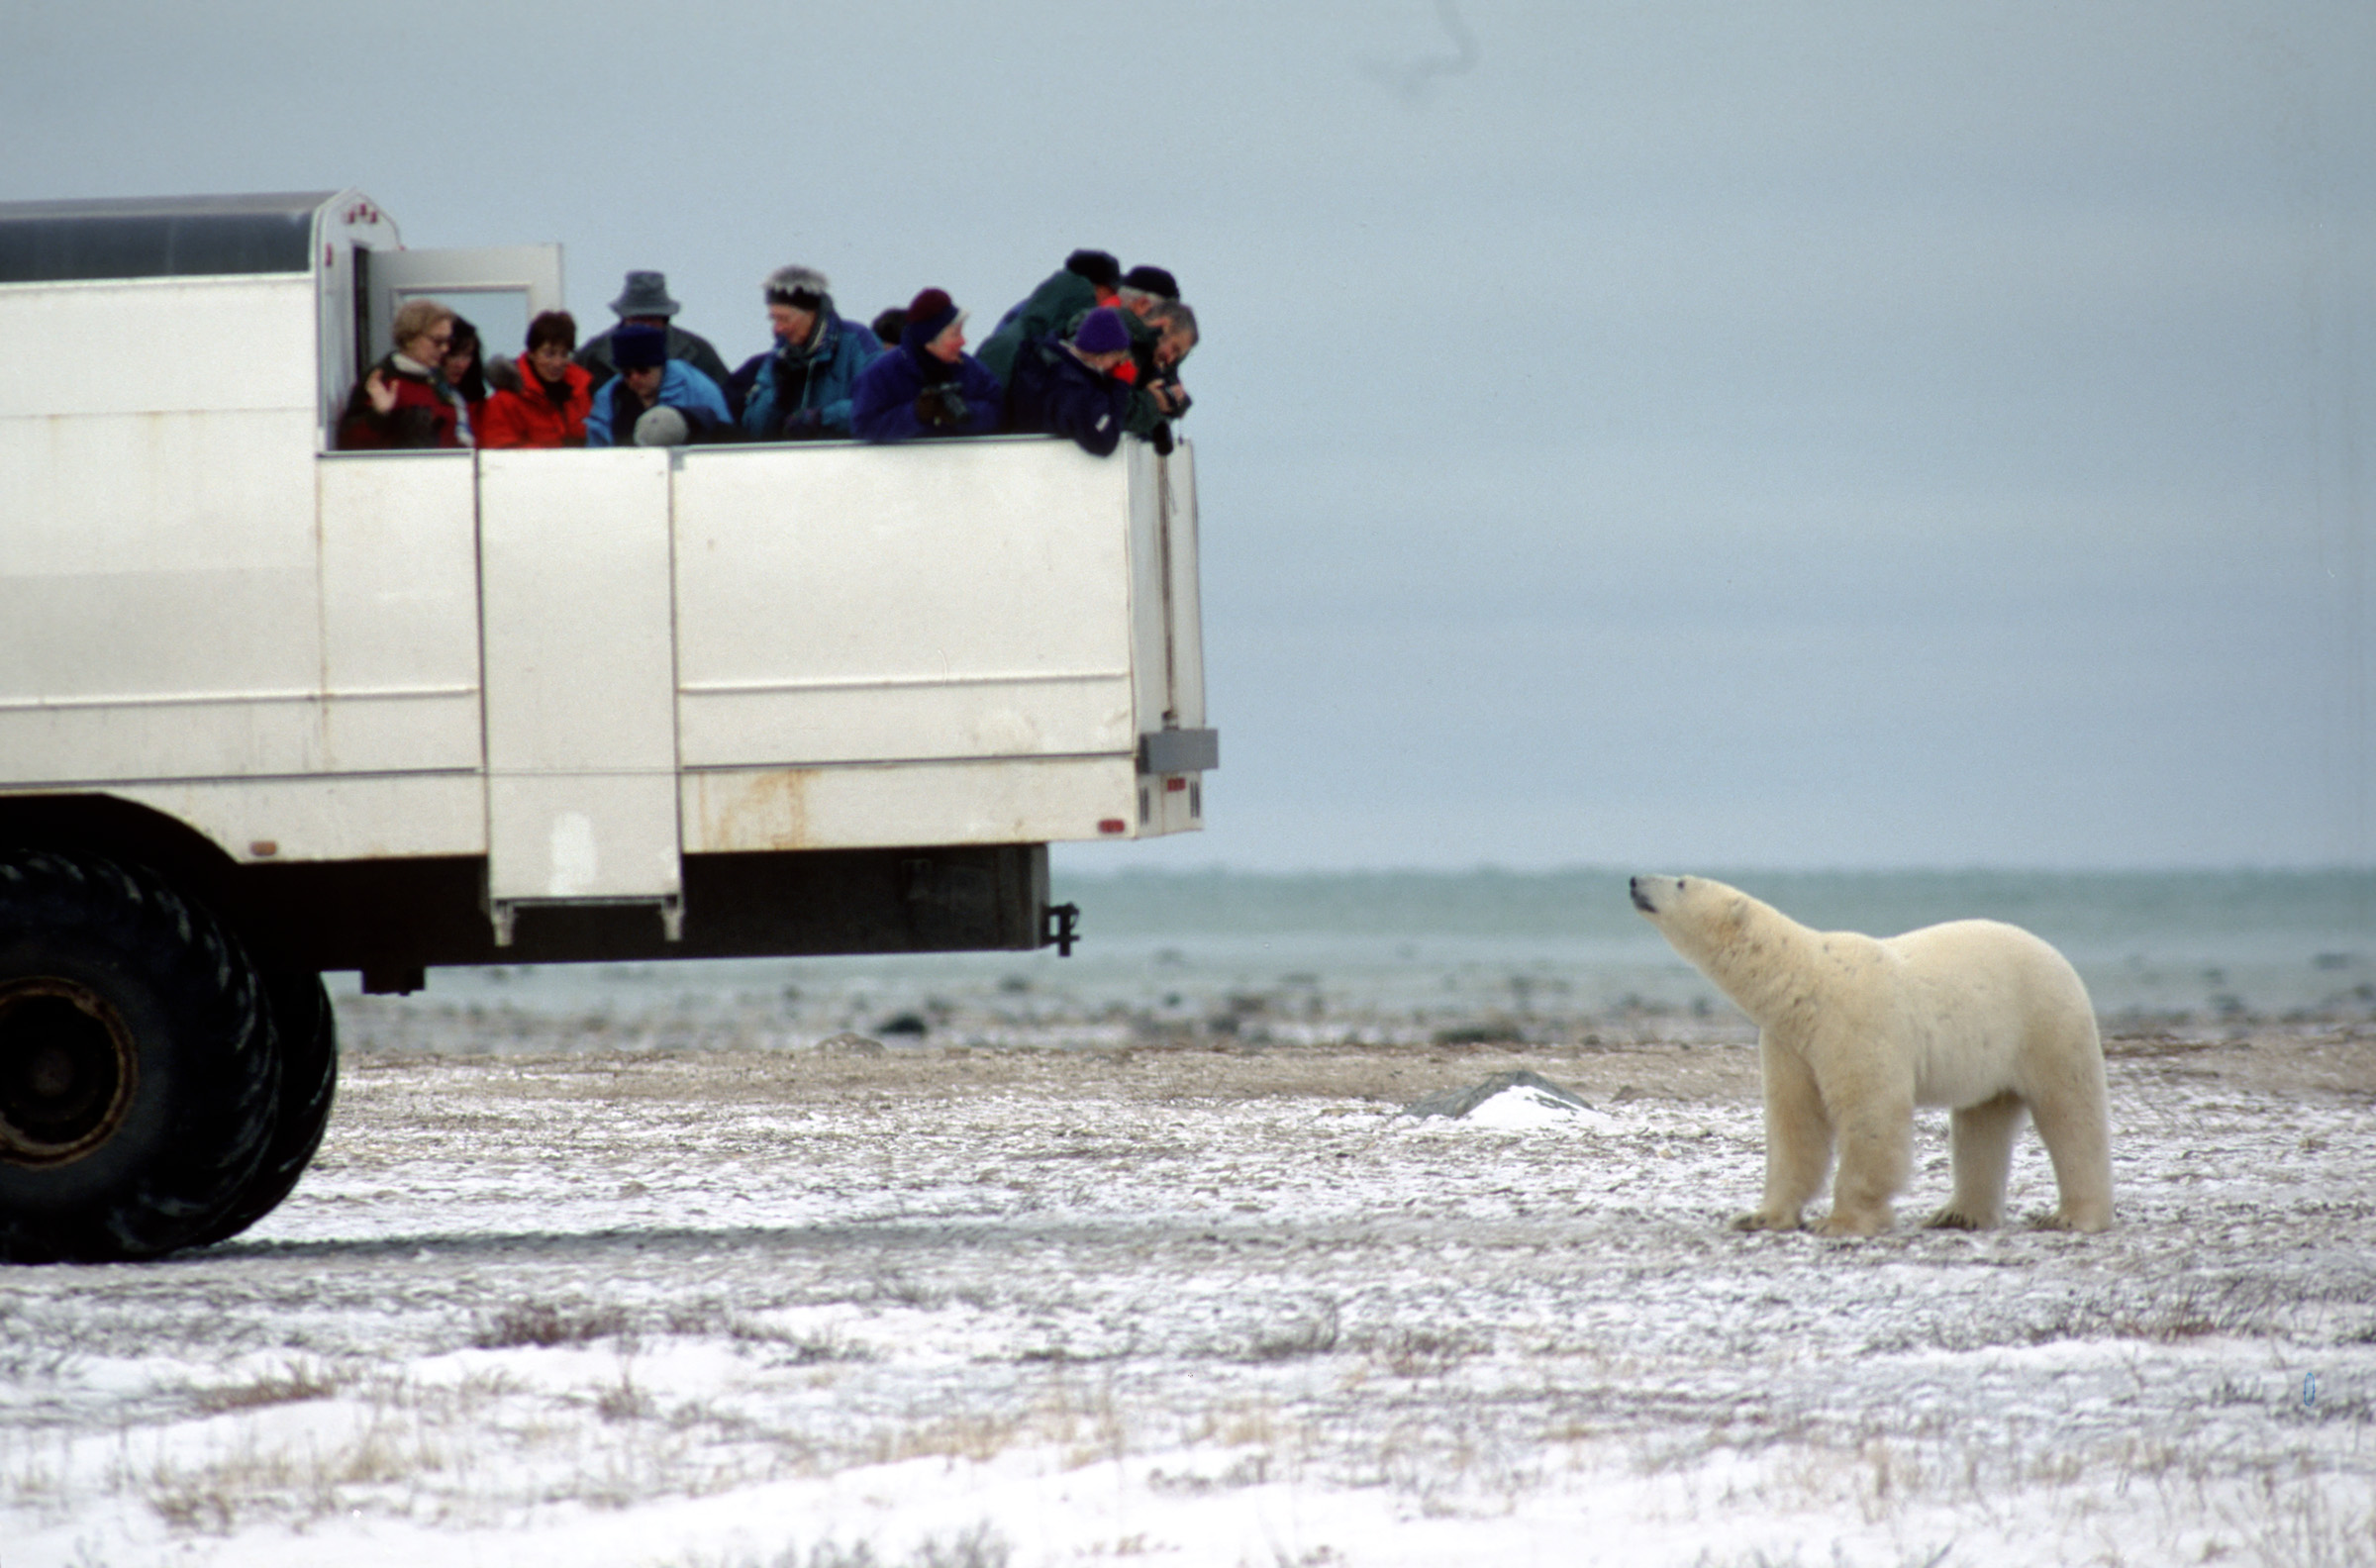 Northern winter safari to see polar bears, northern lights in ...